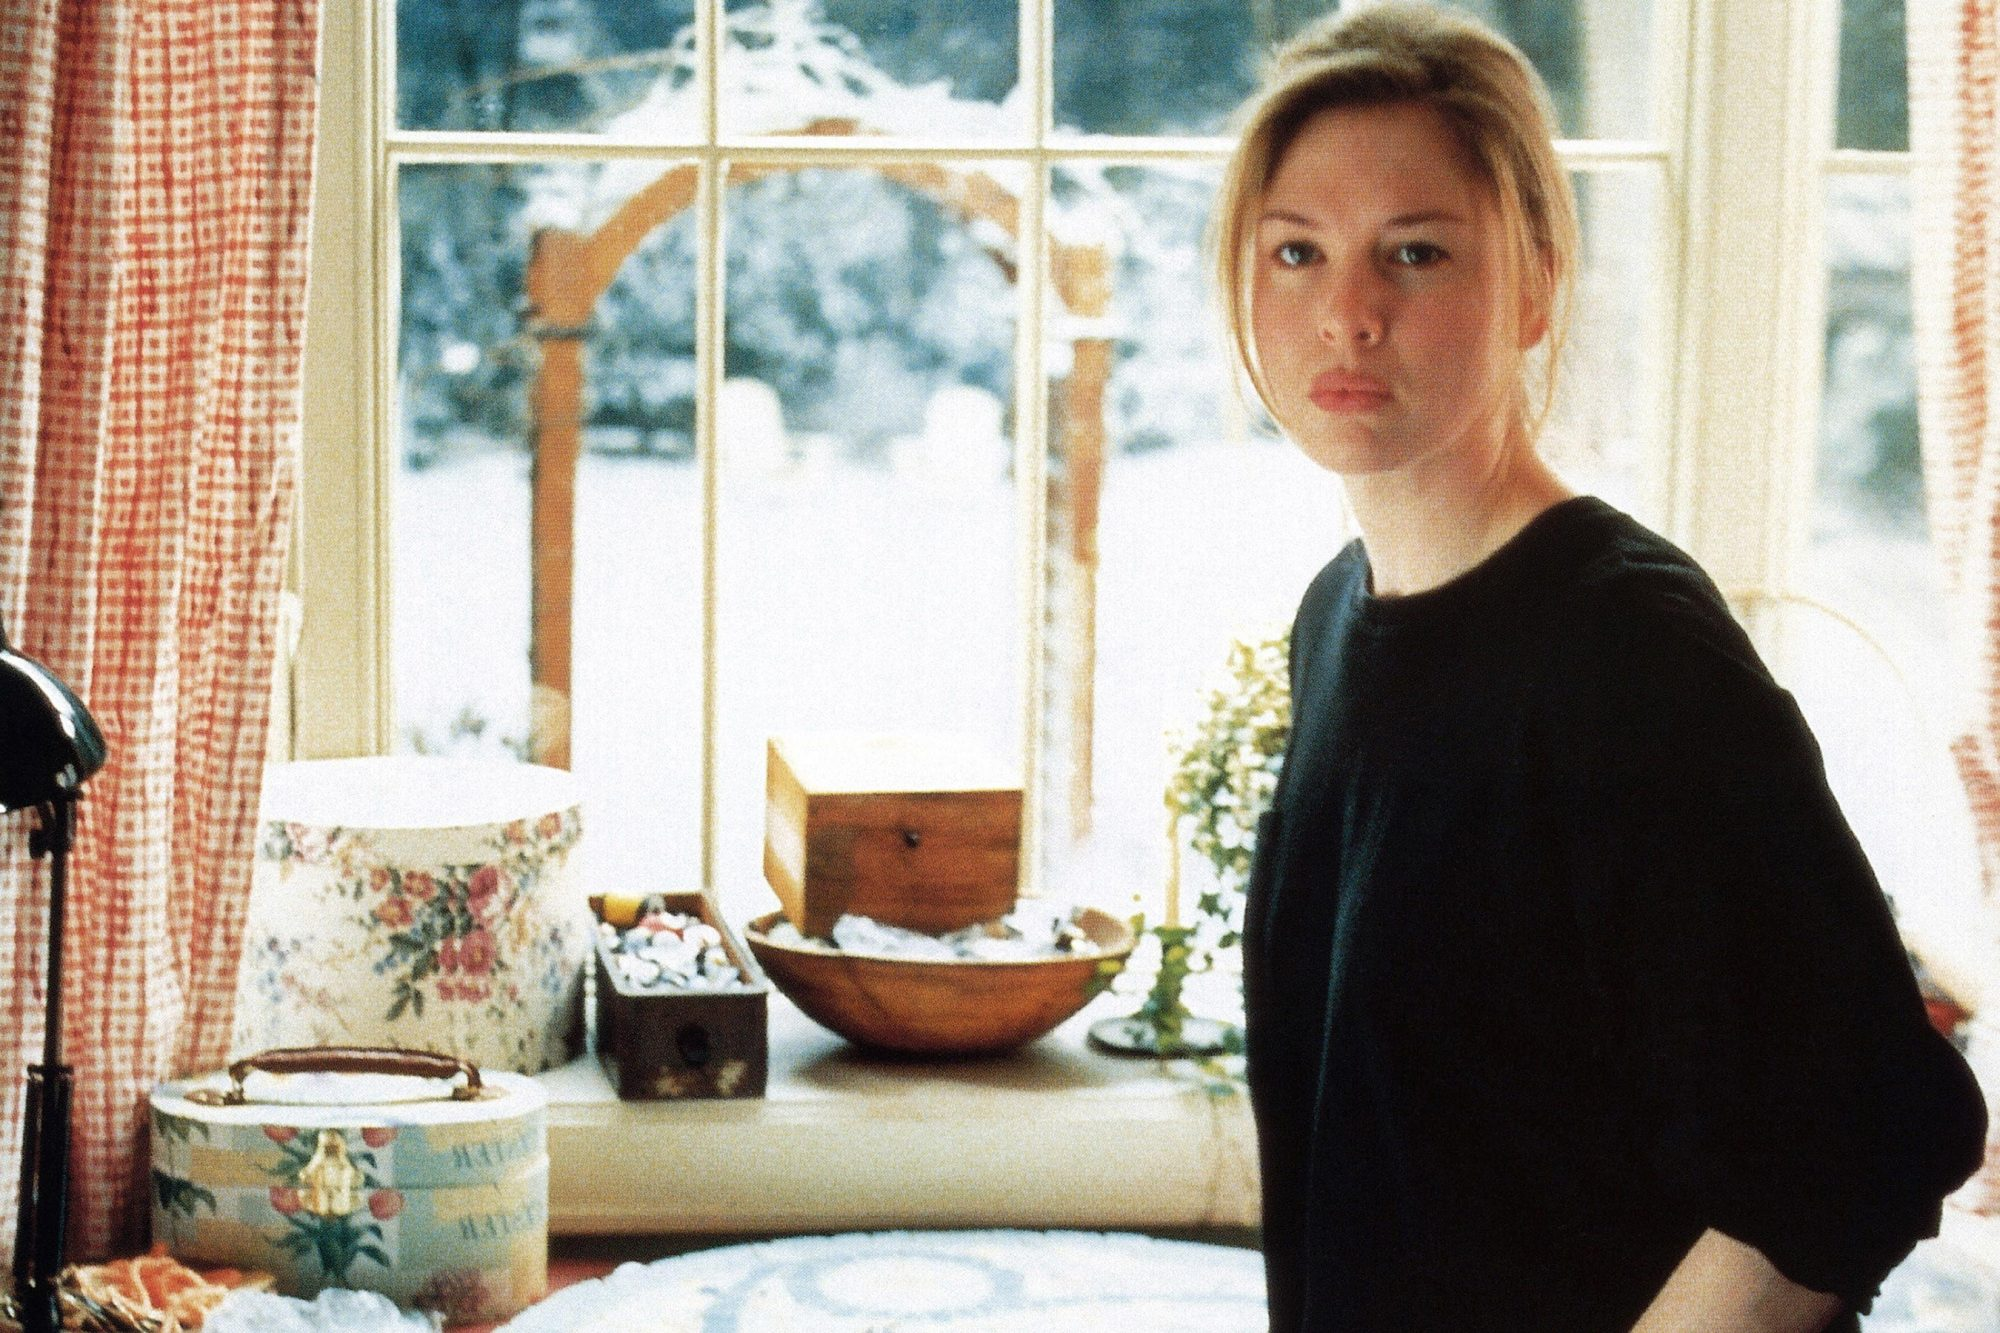 ONE TRUE THING, Renee Zellweger, 1998, © Universal/courtesy Everett Collection